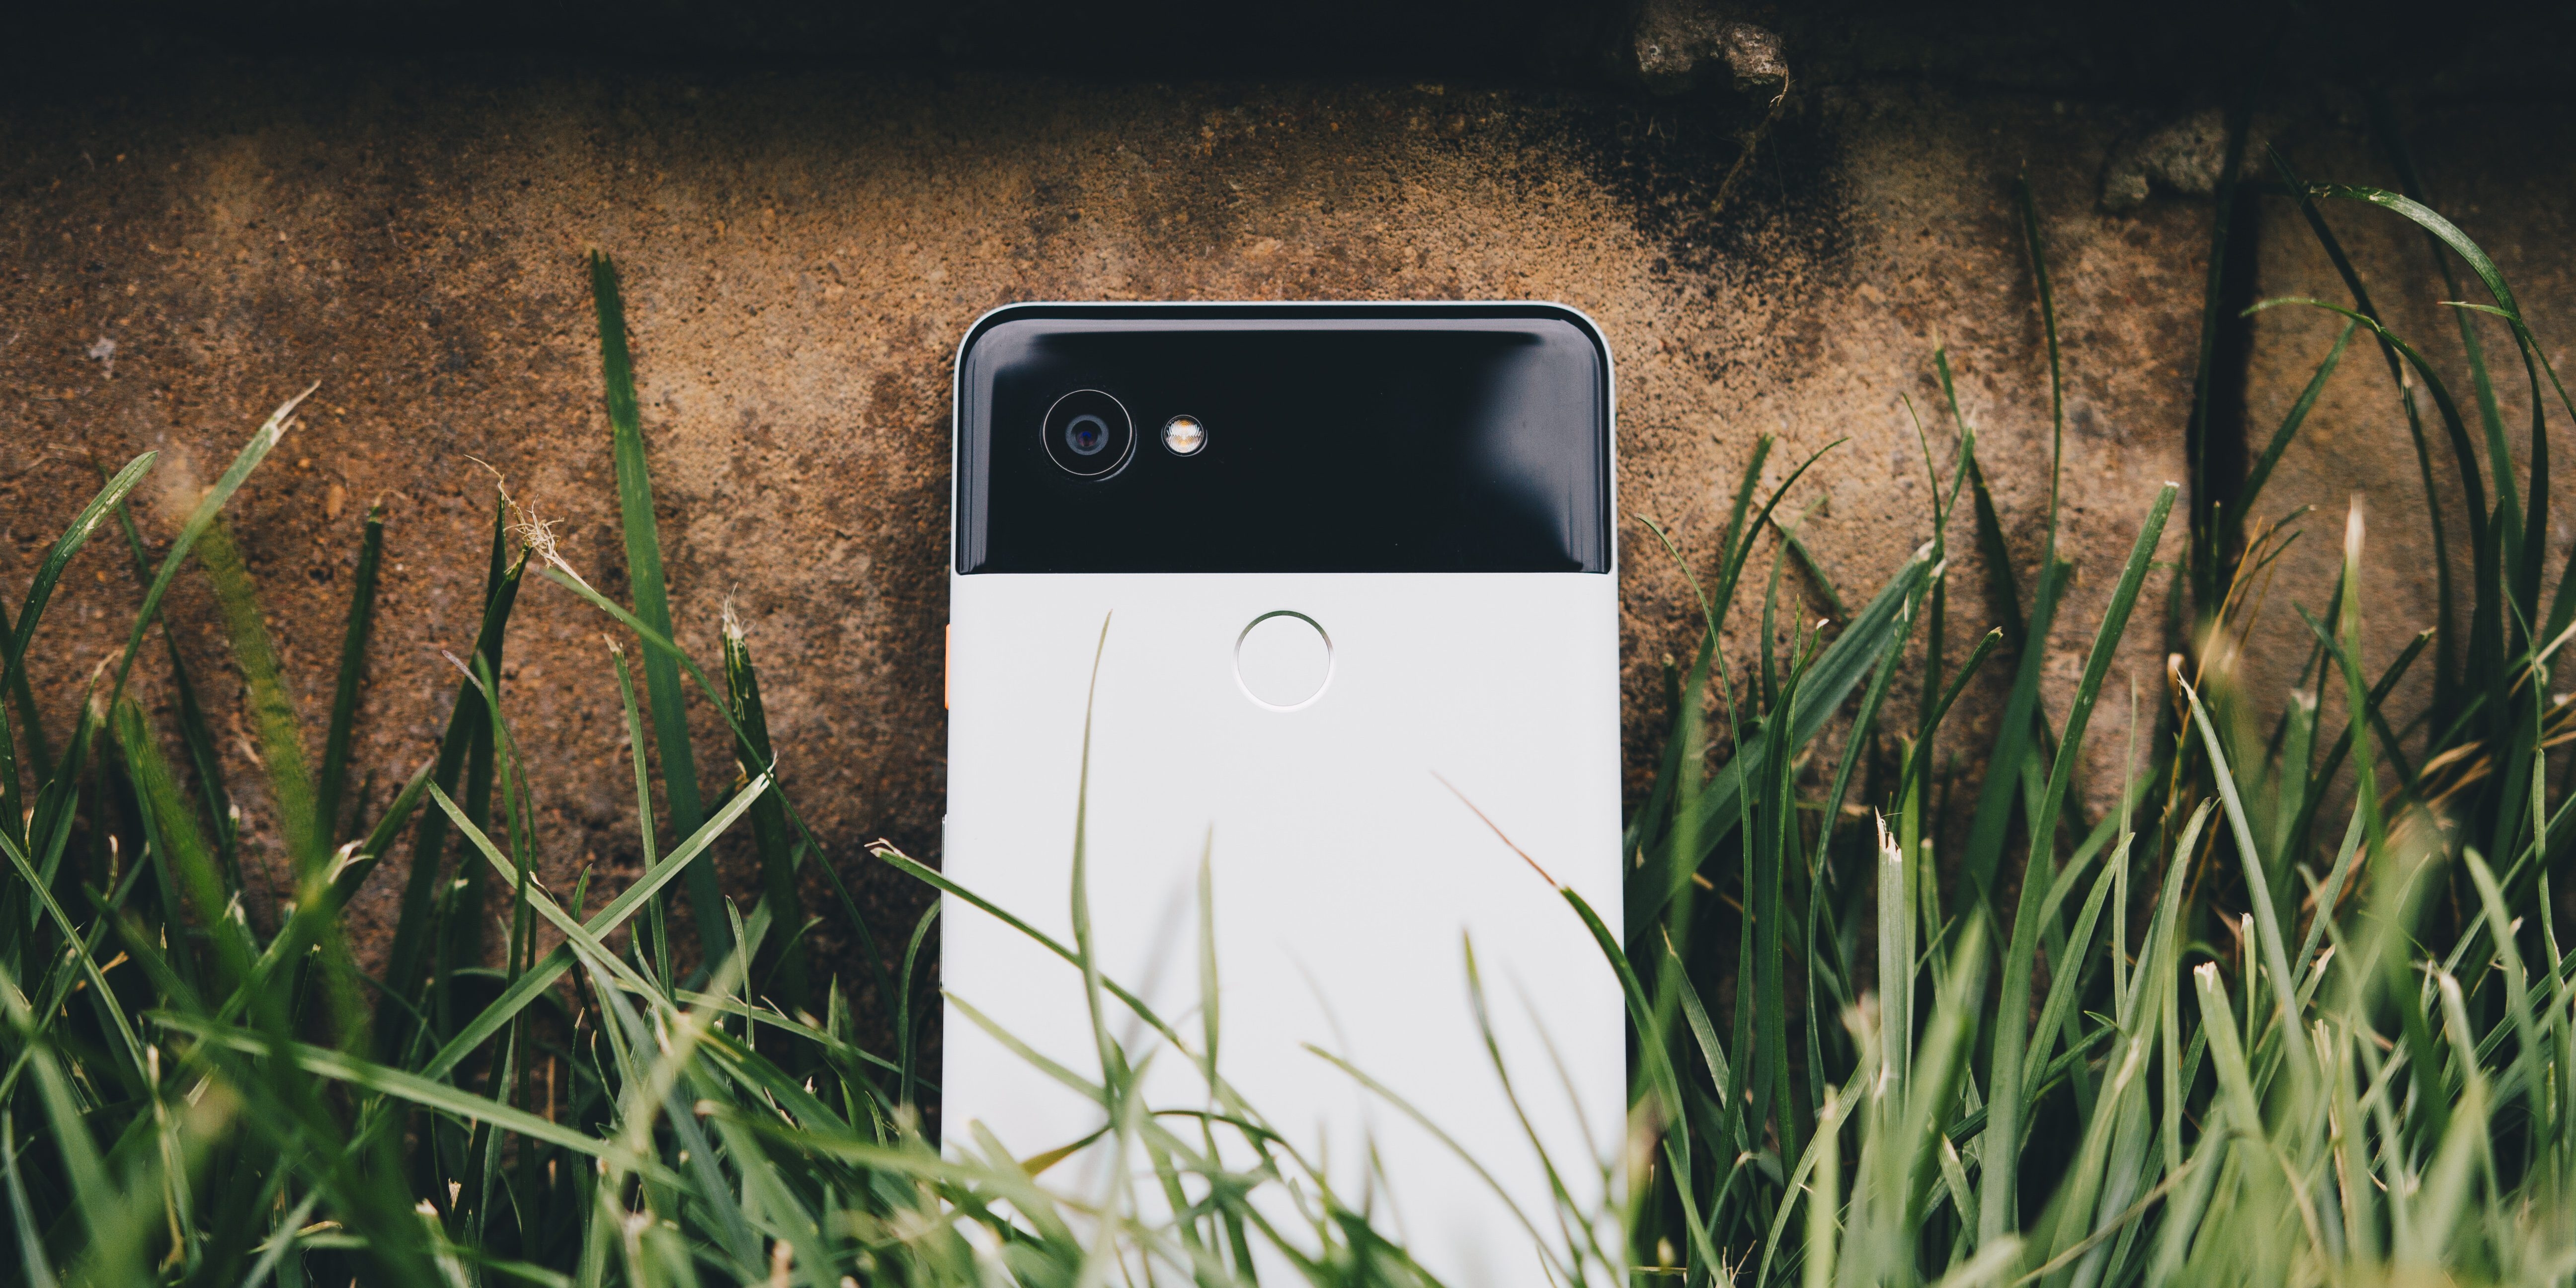 Pixel 2 XL is up to $500 off at Best Buy, today only